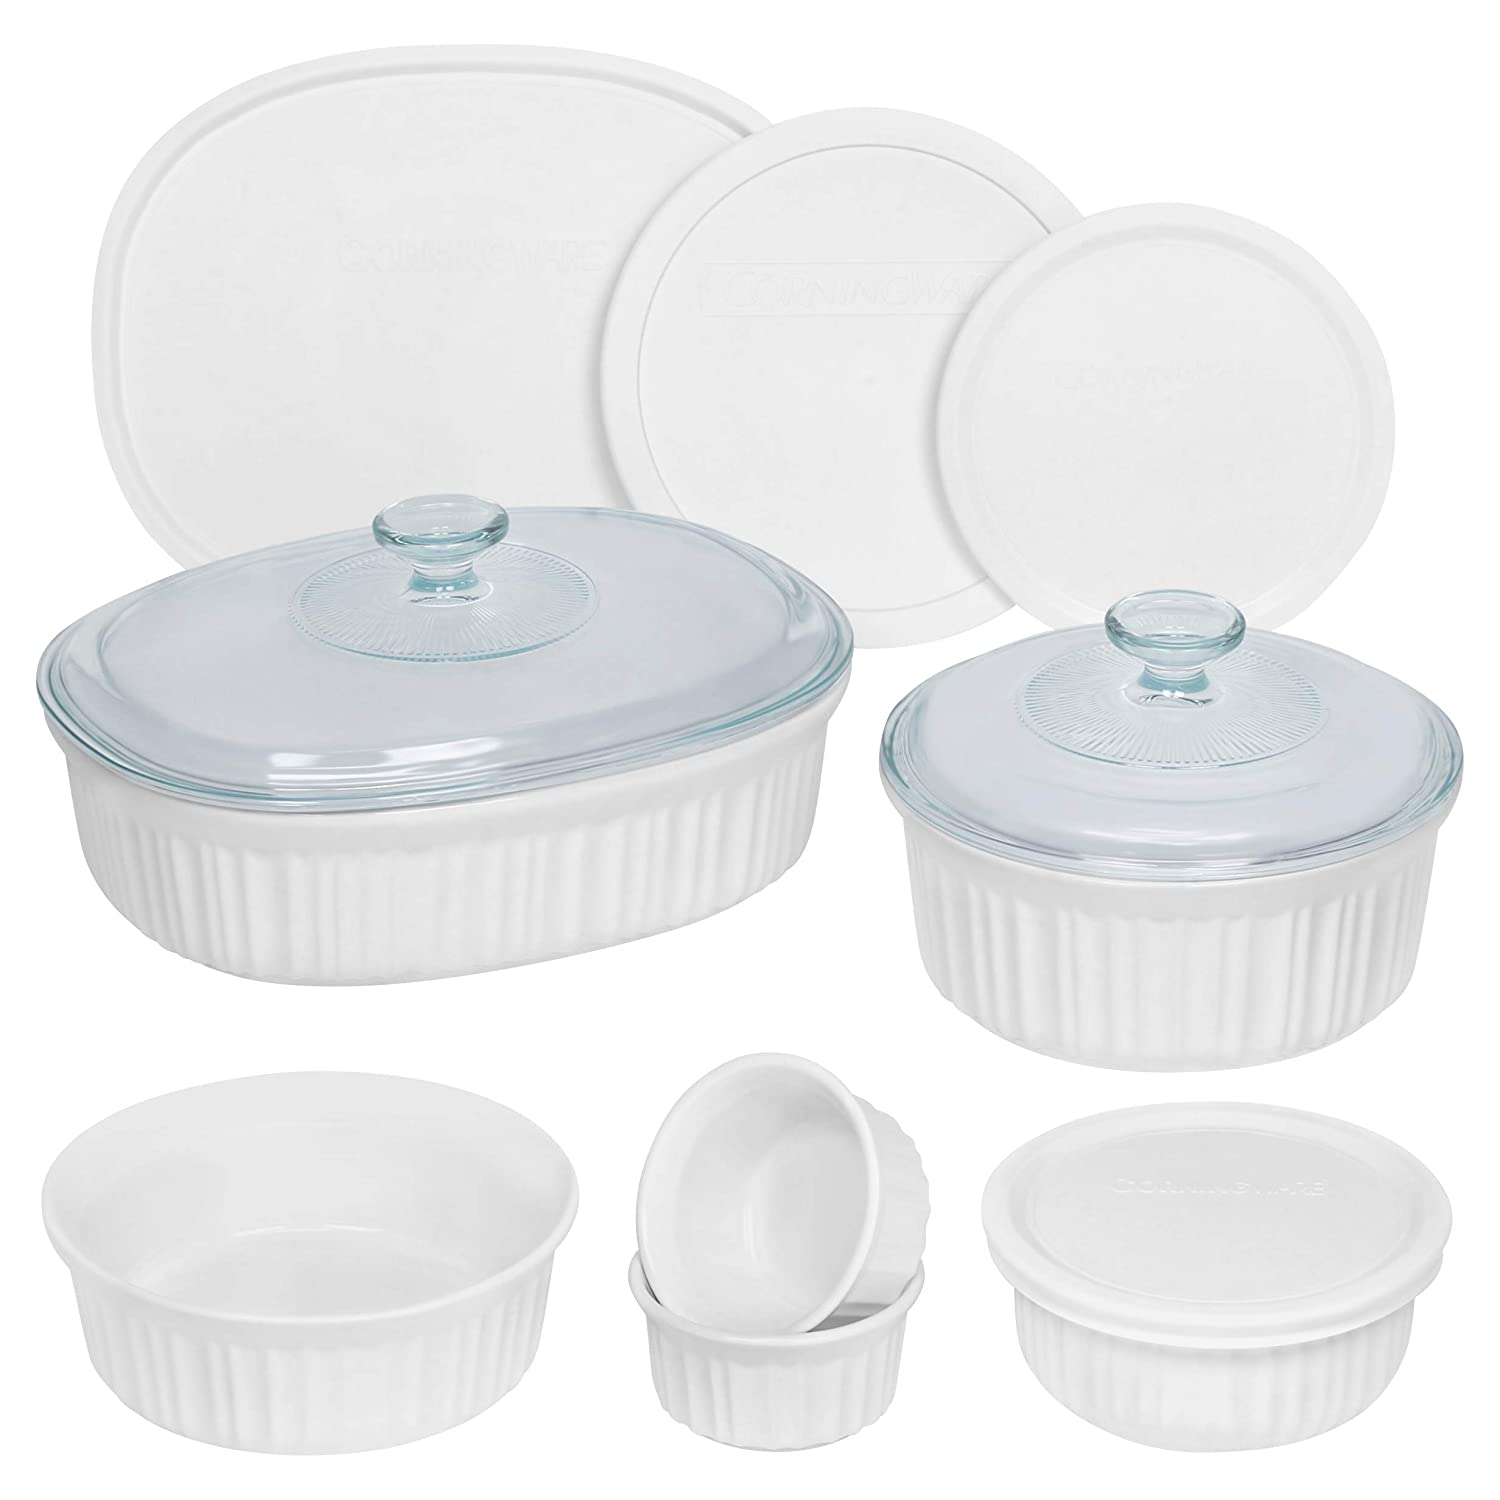 CorningWare French White Round and Oval 1138206 Ceramic Bakeware, 12-Piece